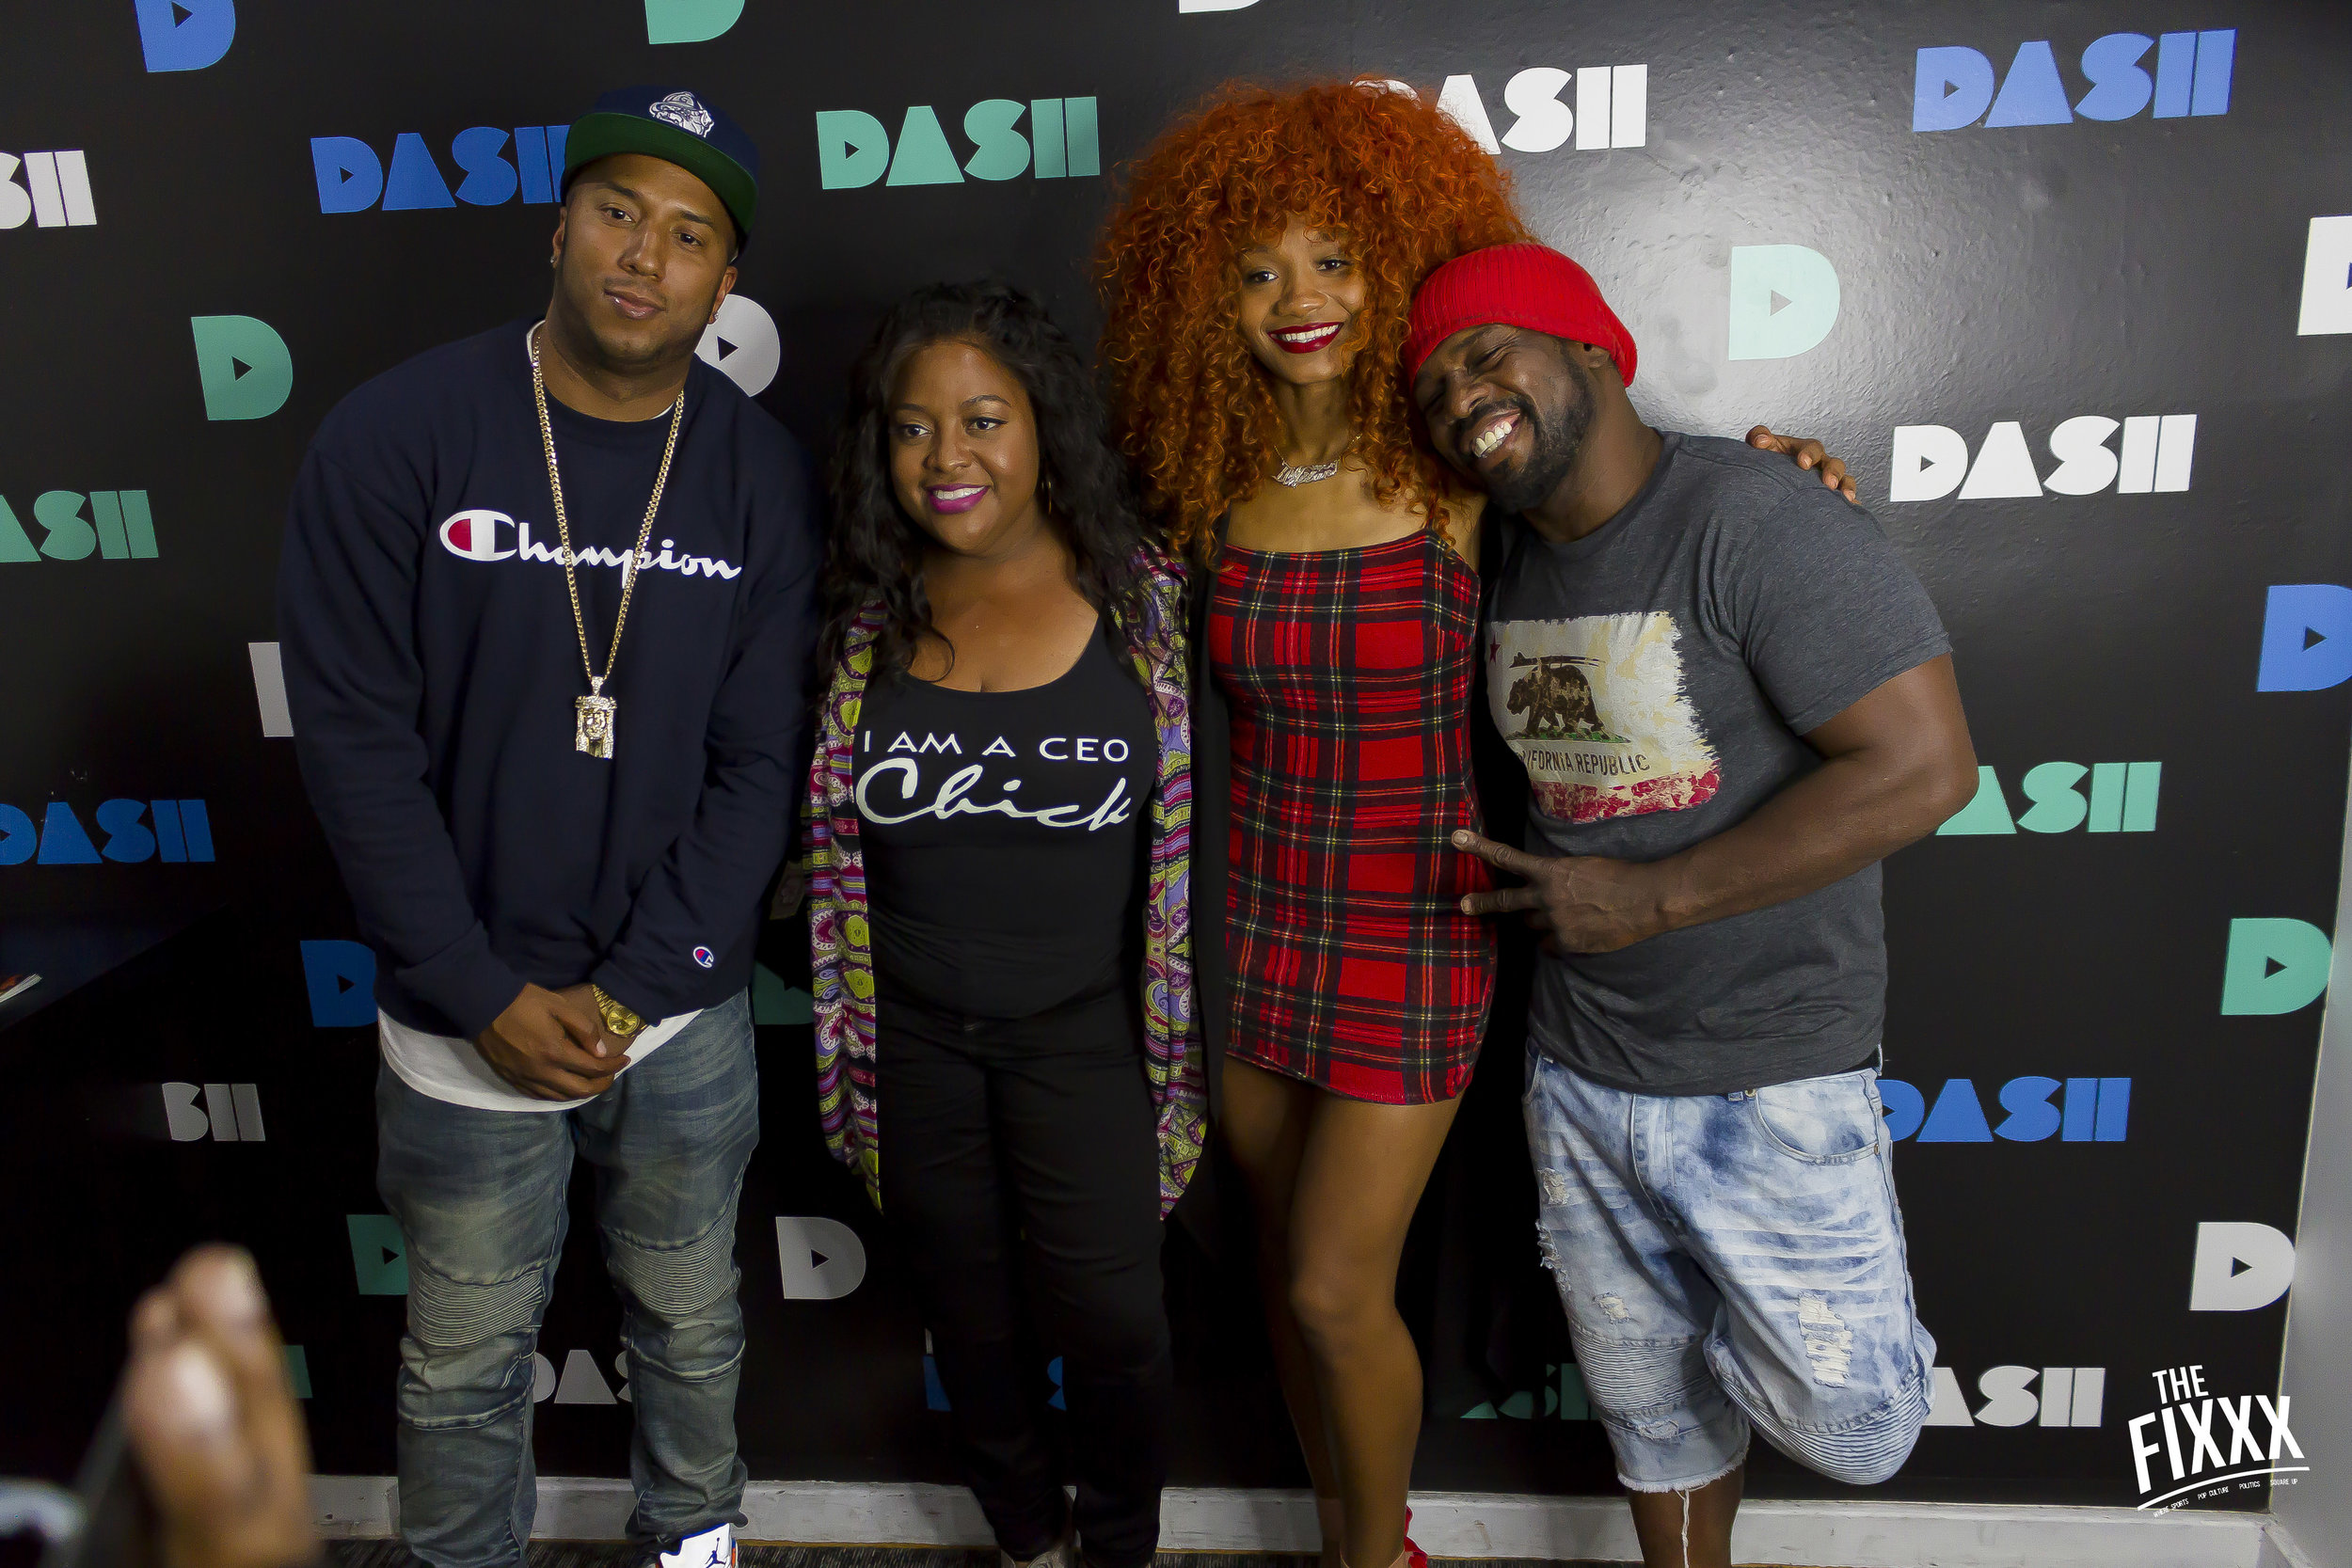 The Fixxx on Dash Radio - 08-31-18_34.jpg